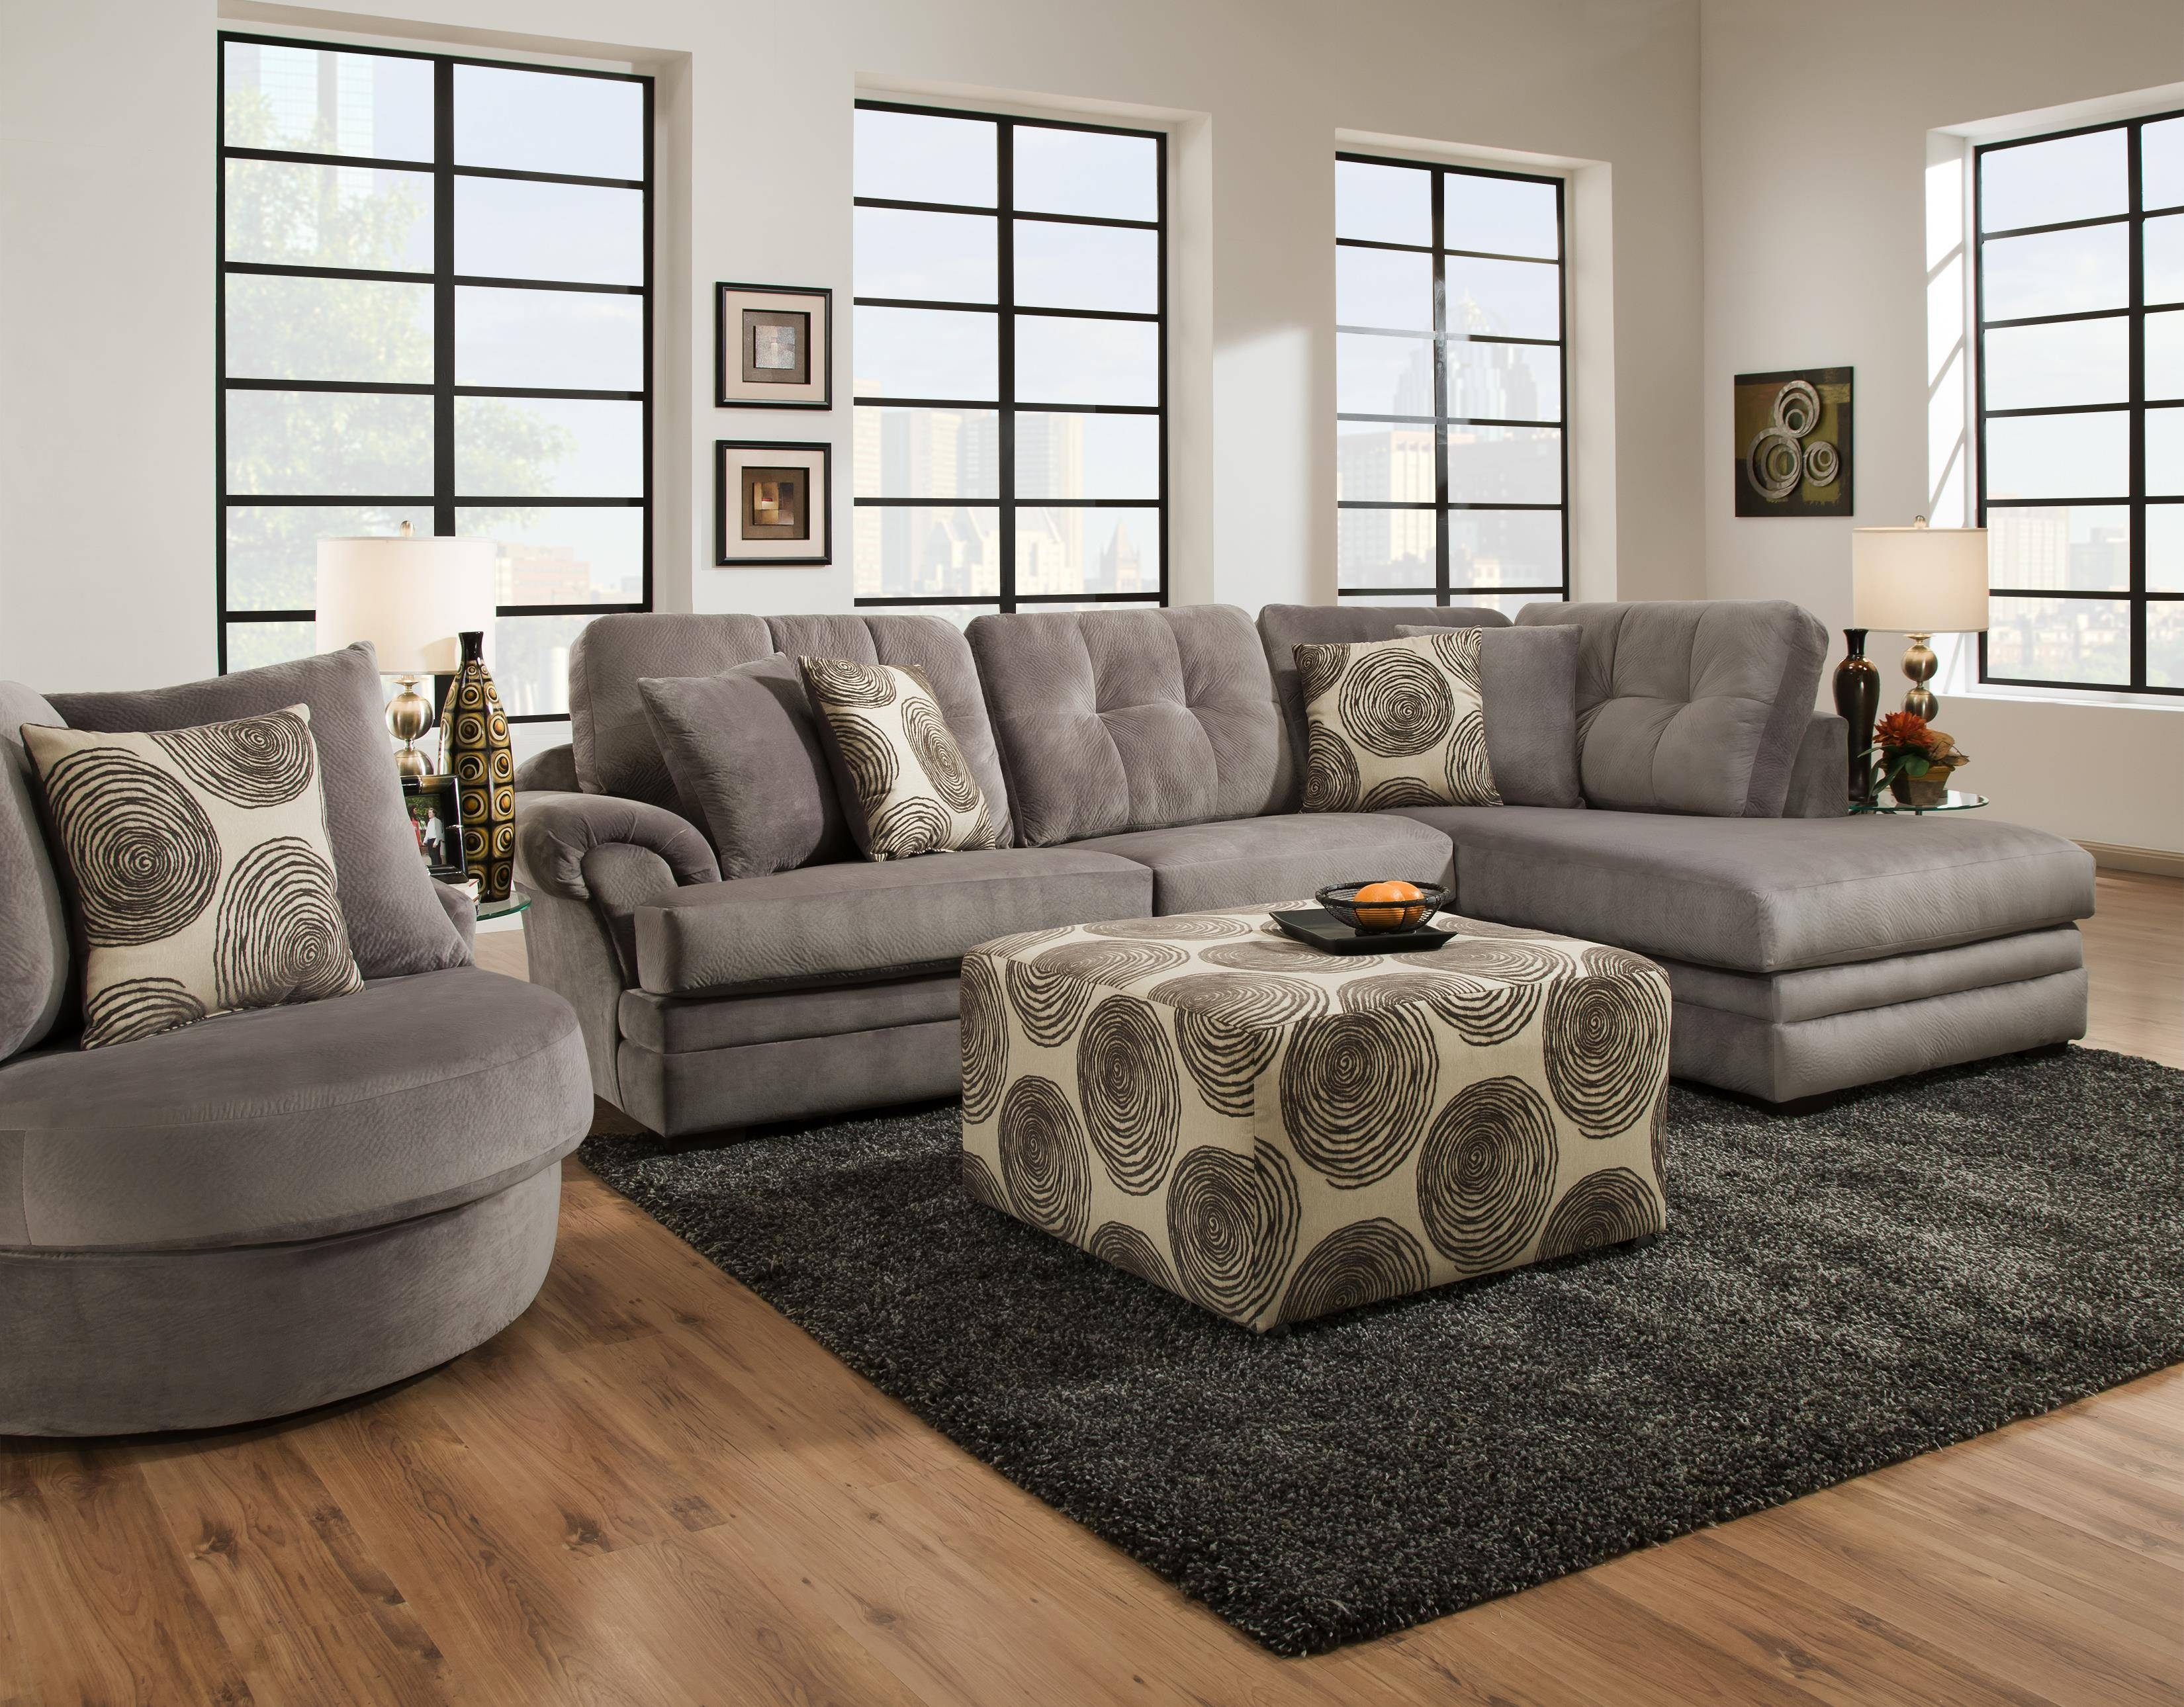 Sectional Sofa With Chaise (On Right Side)Corinthian | Wolf intended for Corinthian Sectional Sofas (Image 24 of 30)